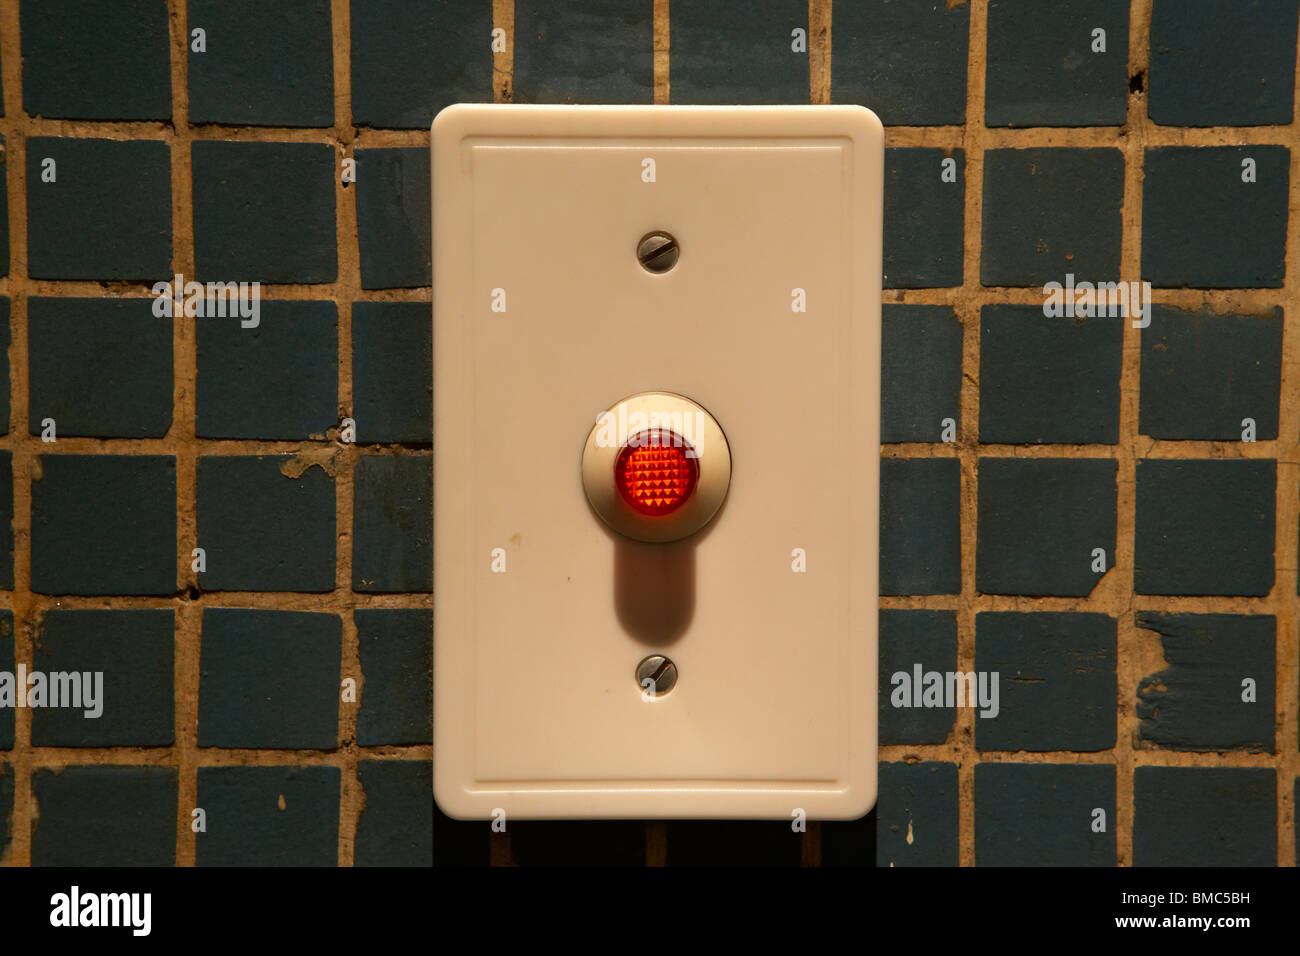 red light door buzzer button on a old tiled wall - Stock Image